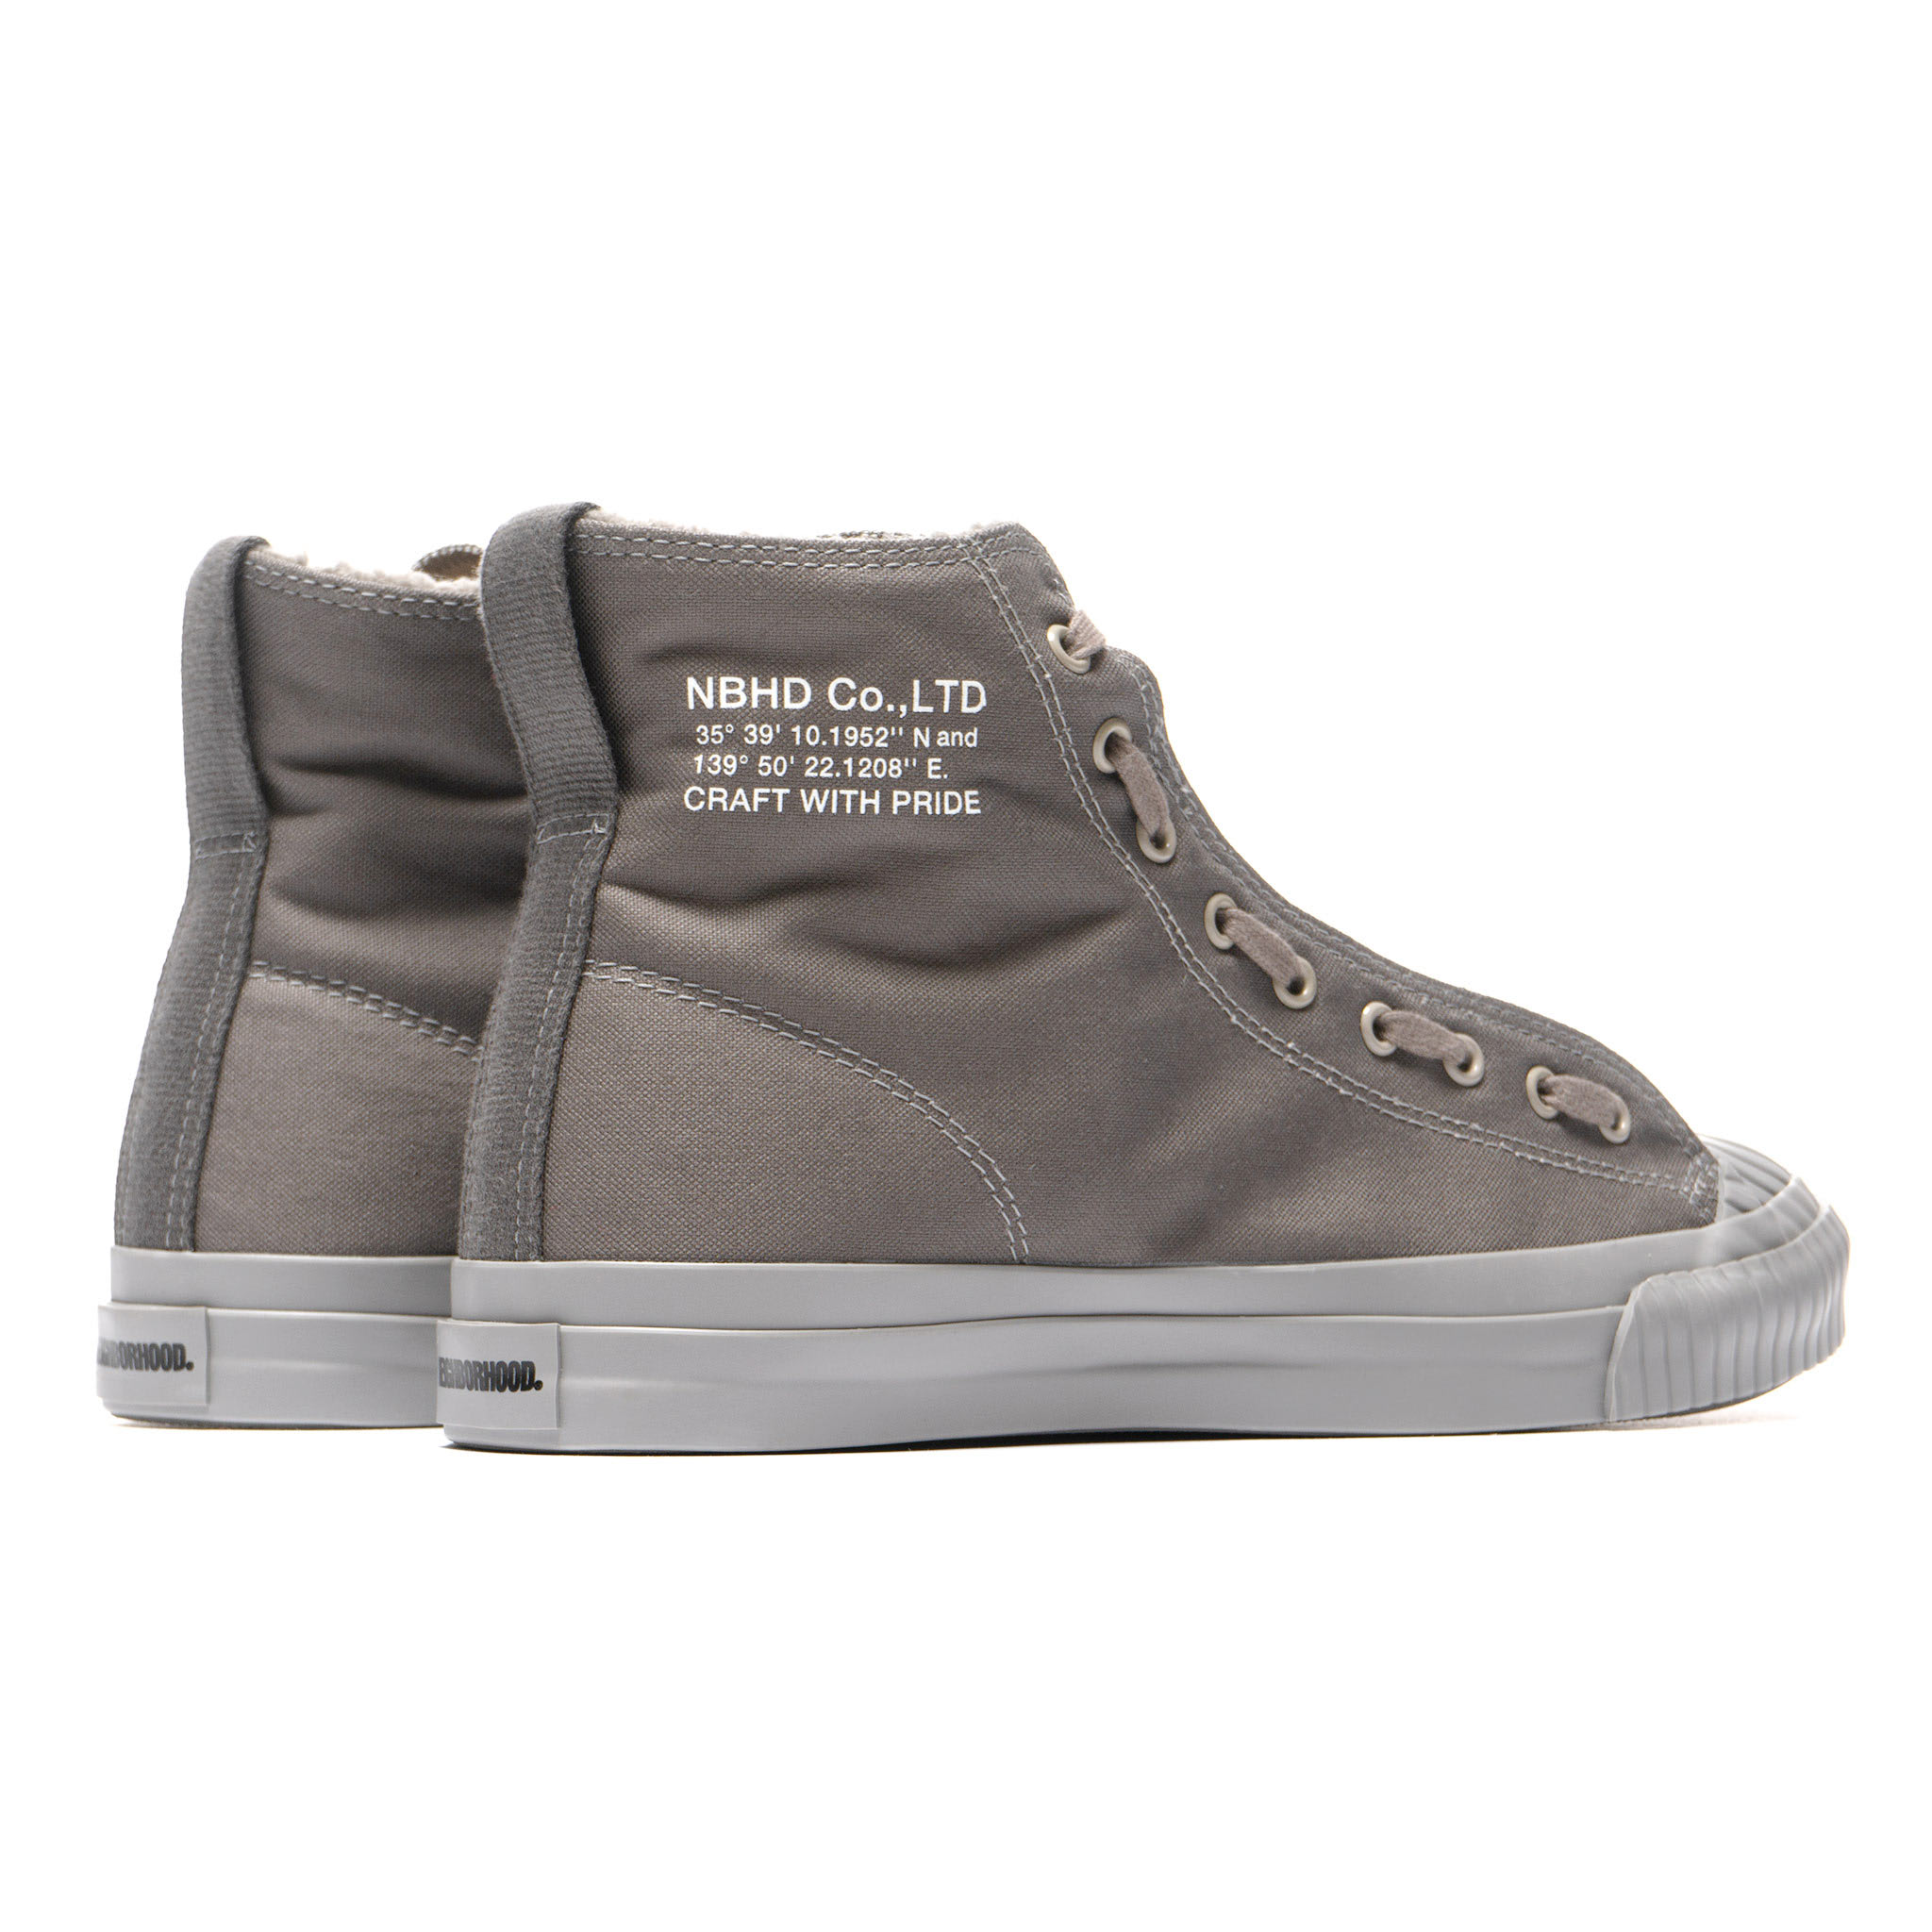 b1d96071 NEIGHBORHOOD releases a unique high-top sneaker this season, teeming with  military-inspired design. With a nod to the classic basketball silhouette,  ...